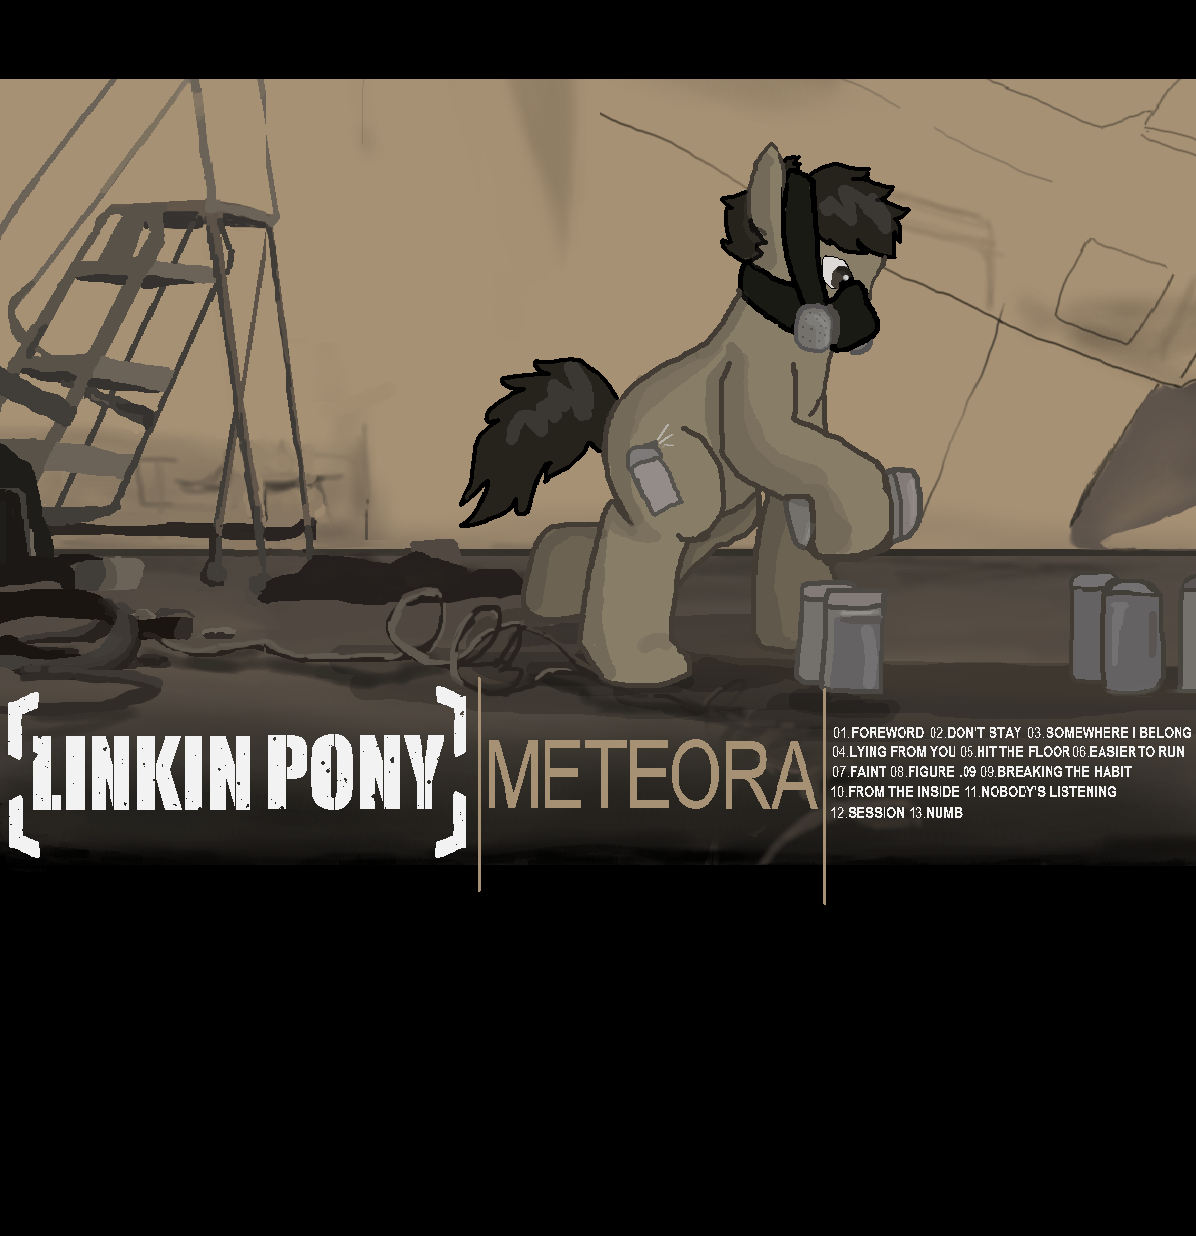 Linkin Pony: Meteora By Kaciekk On DeviantArt